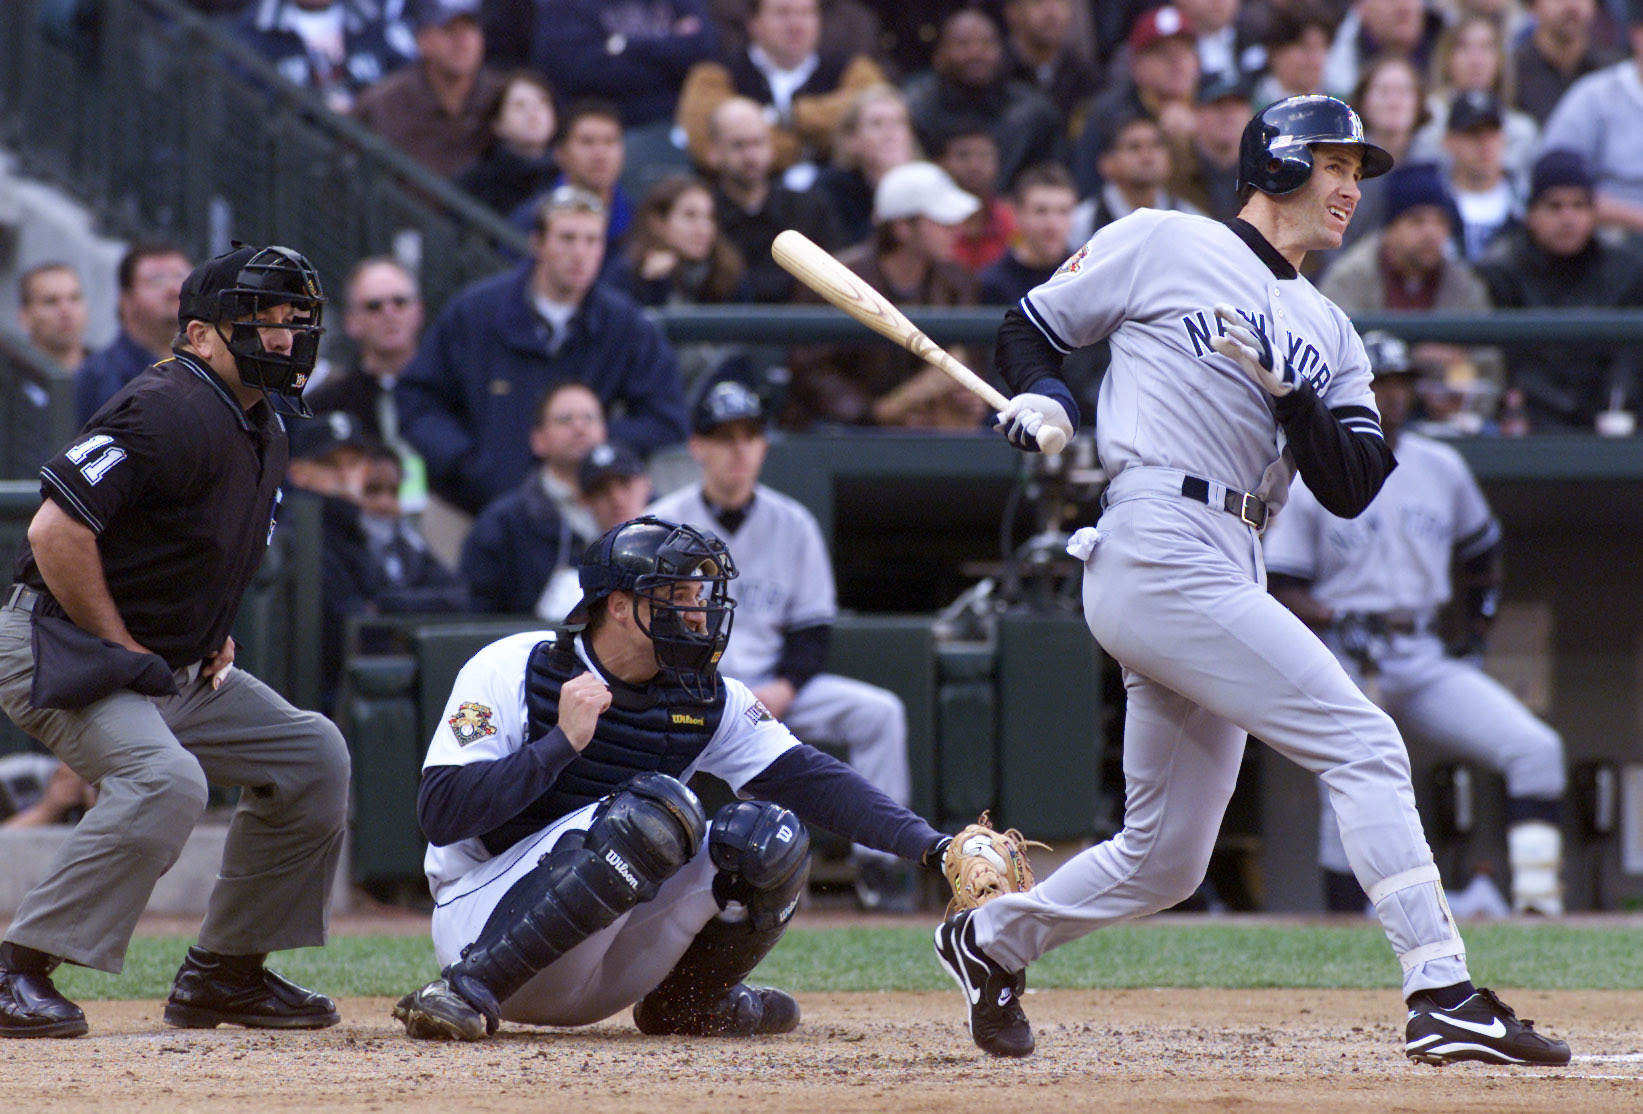 SEATTLE - OCTOBER 17 Oct 2001: Paul O'Neill #21 of the New York Yankees hits a home run off of Aaron Sele #30 of the Seattle Mariners during game one of the American League Championship Series playoffs on October 17, 2001 at SafeCo Field in Seattle, Washi